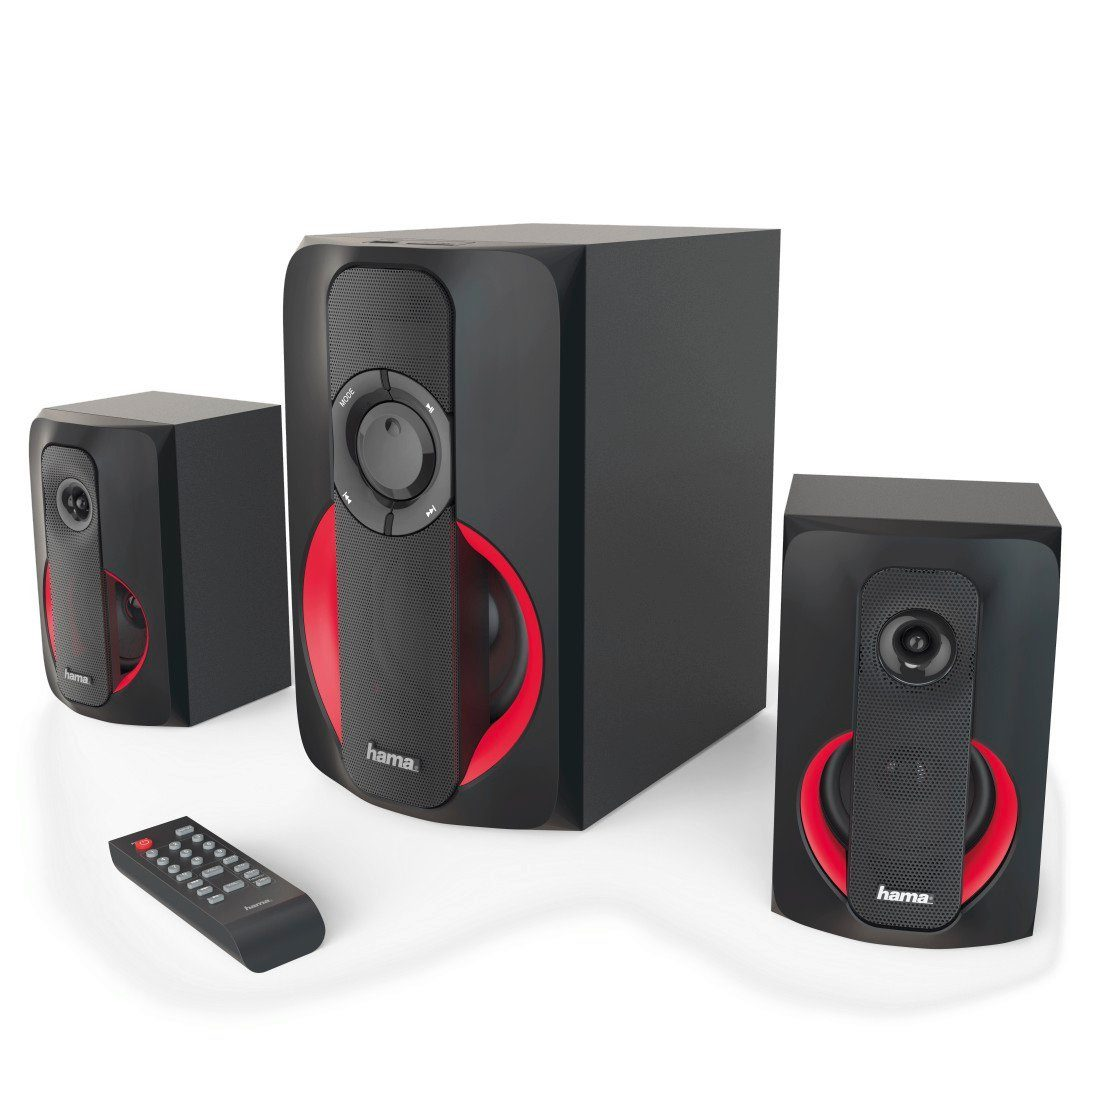 hama 2 1 soundsystem m fernbedienung bluetooth usb sd f r. Black Bedroom Furniture Sets. Home Design Ideas